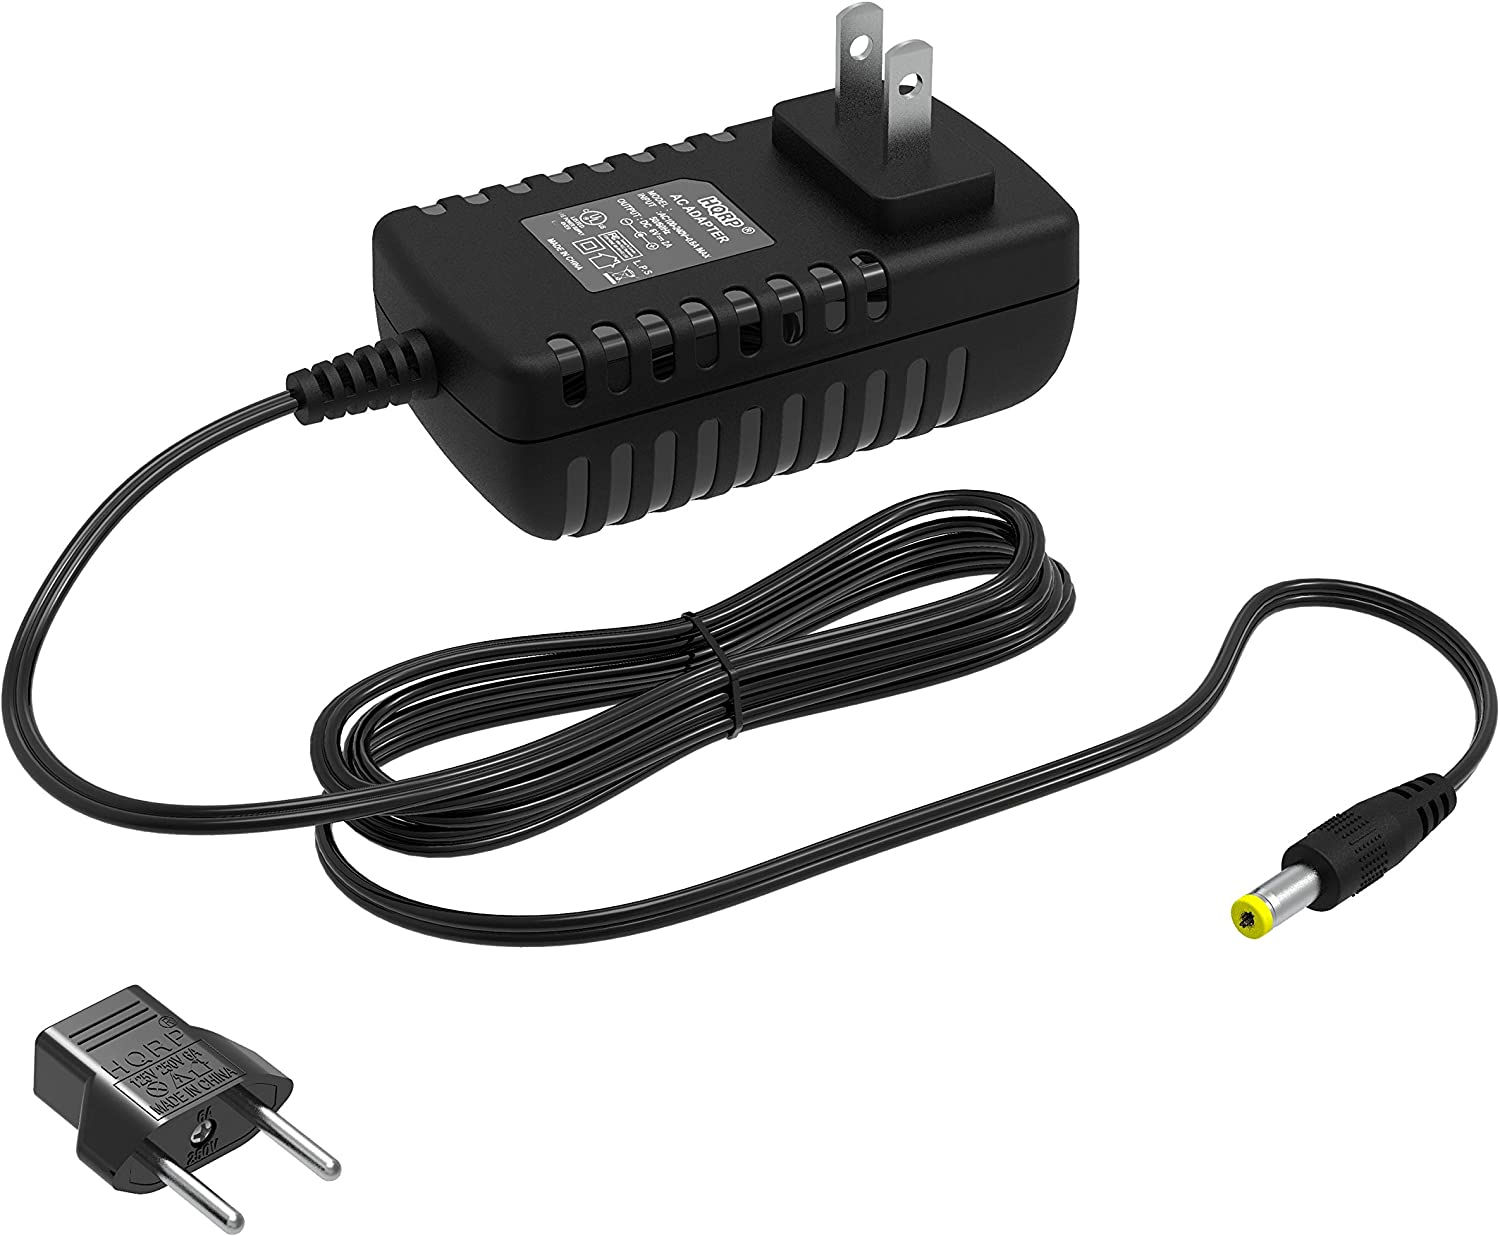 HQRP AC Adapter Compatible with PROFORM I Series 785 F Elliptical Exerciser PFEL579080 PFEL579081 PFEL579082 PFEL579089 Power Supply Cord [UL Listed] + Euro Plug Adapter